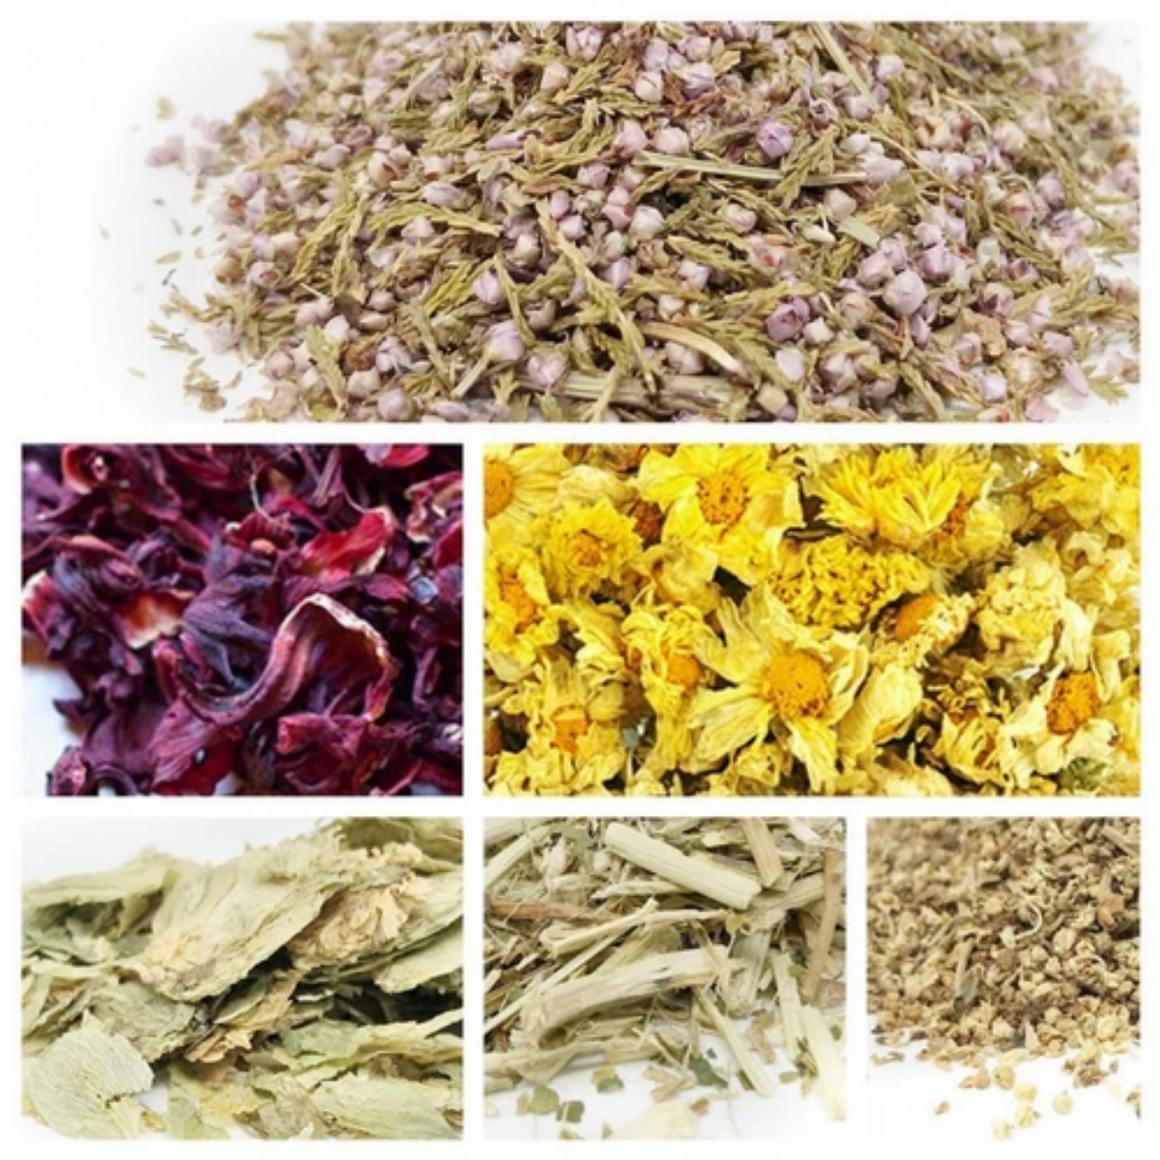 Bulk Botanical Herb Sampler (6pack)